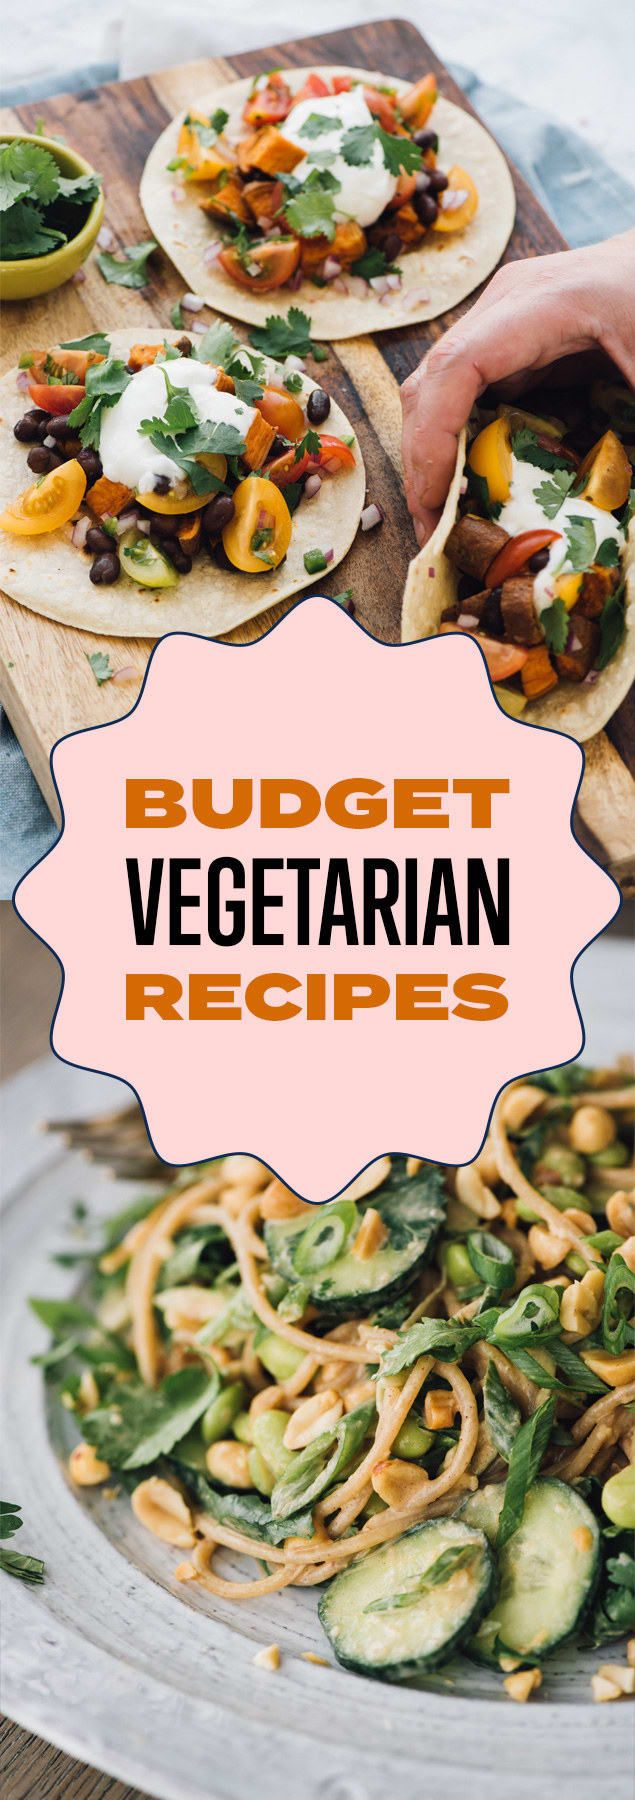 14 vegetarian recipes that will not break the bank | Recipes